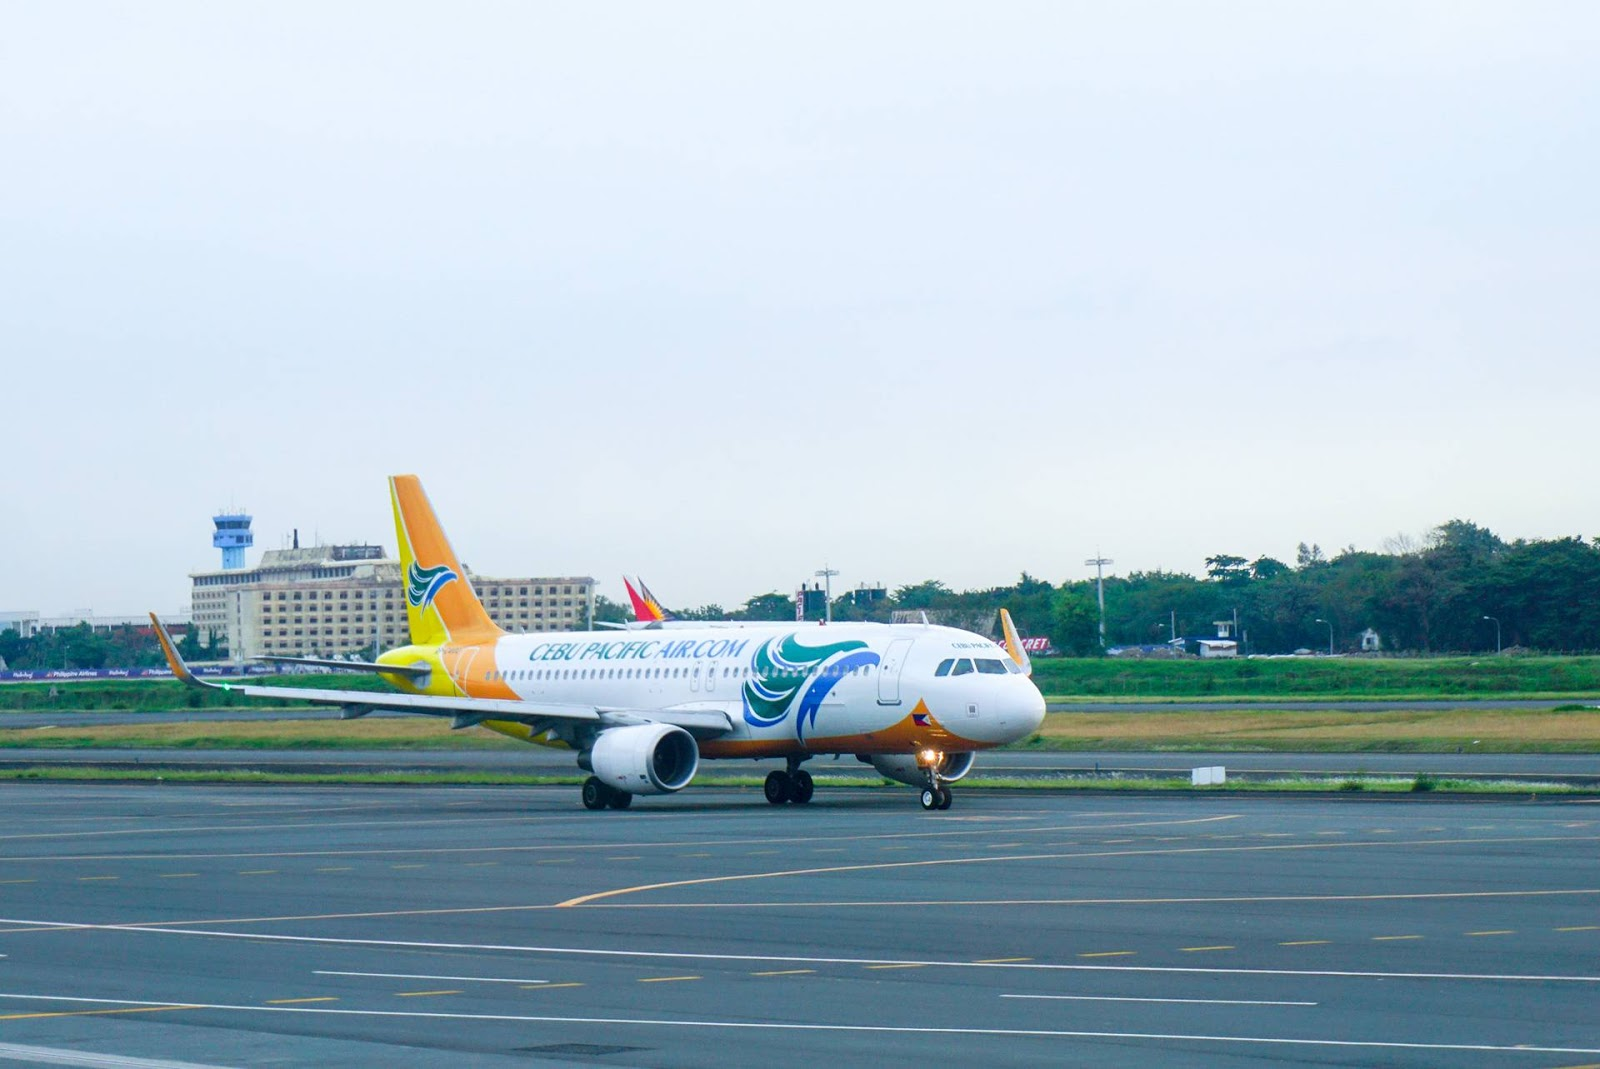 cebu pacific Cebu pacific has many fans here in tripadvisor, there are also who are not happy with the airline if you are used to riding a low-cost carrier then cebu pacific is just like any of them.